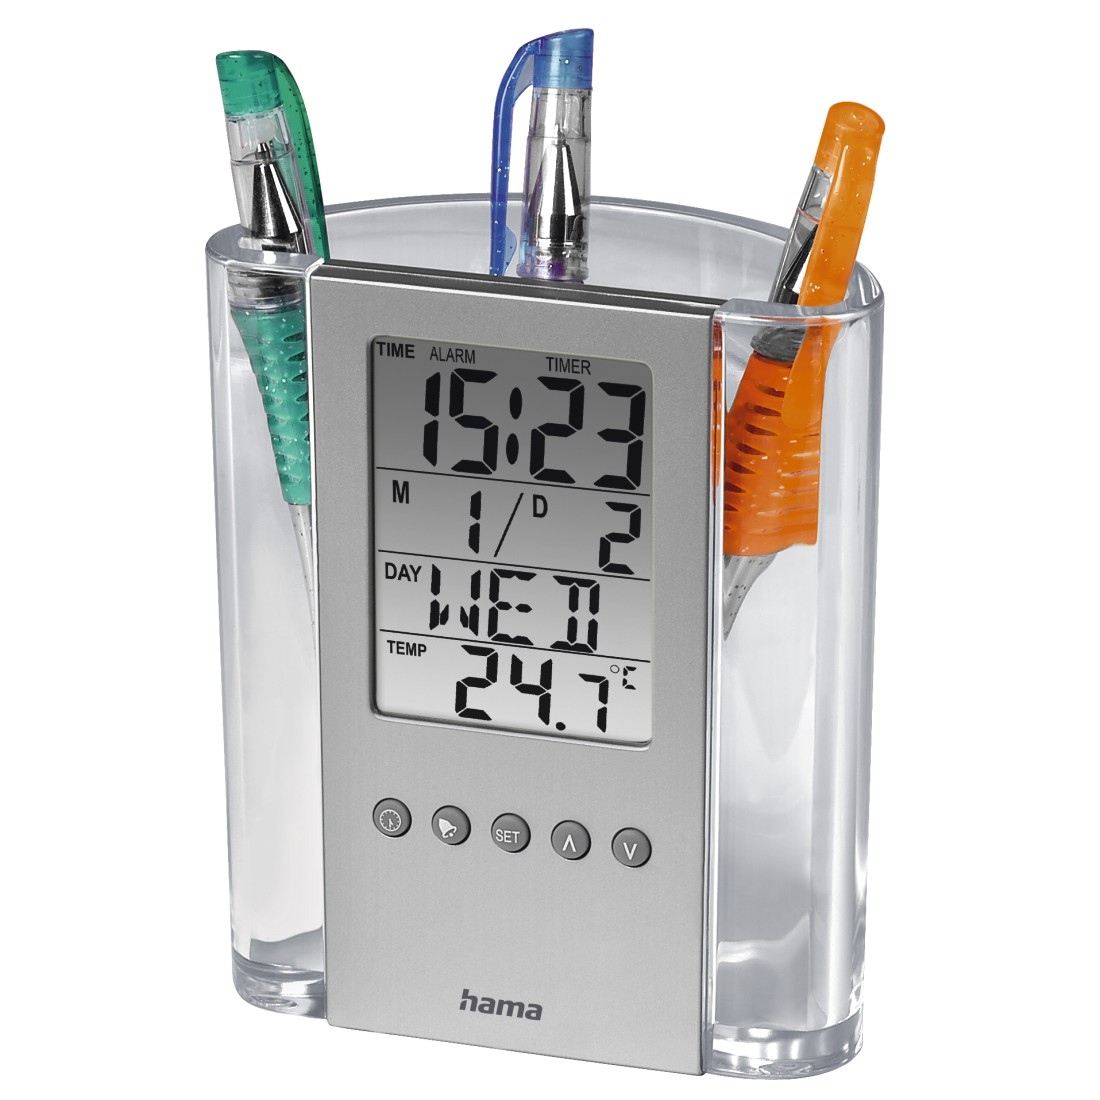 abx High-Res Image - Hama, LCD Thermometer and Pen Holder